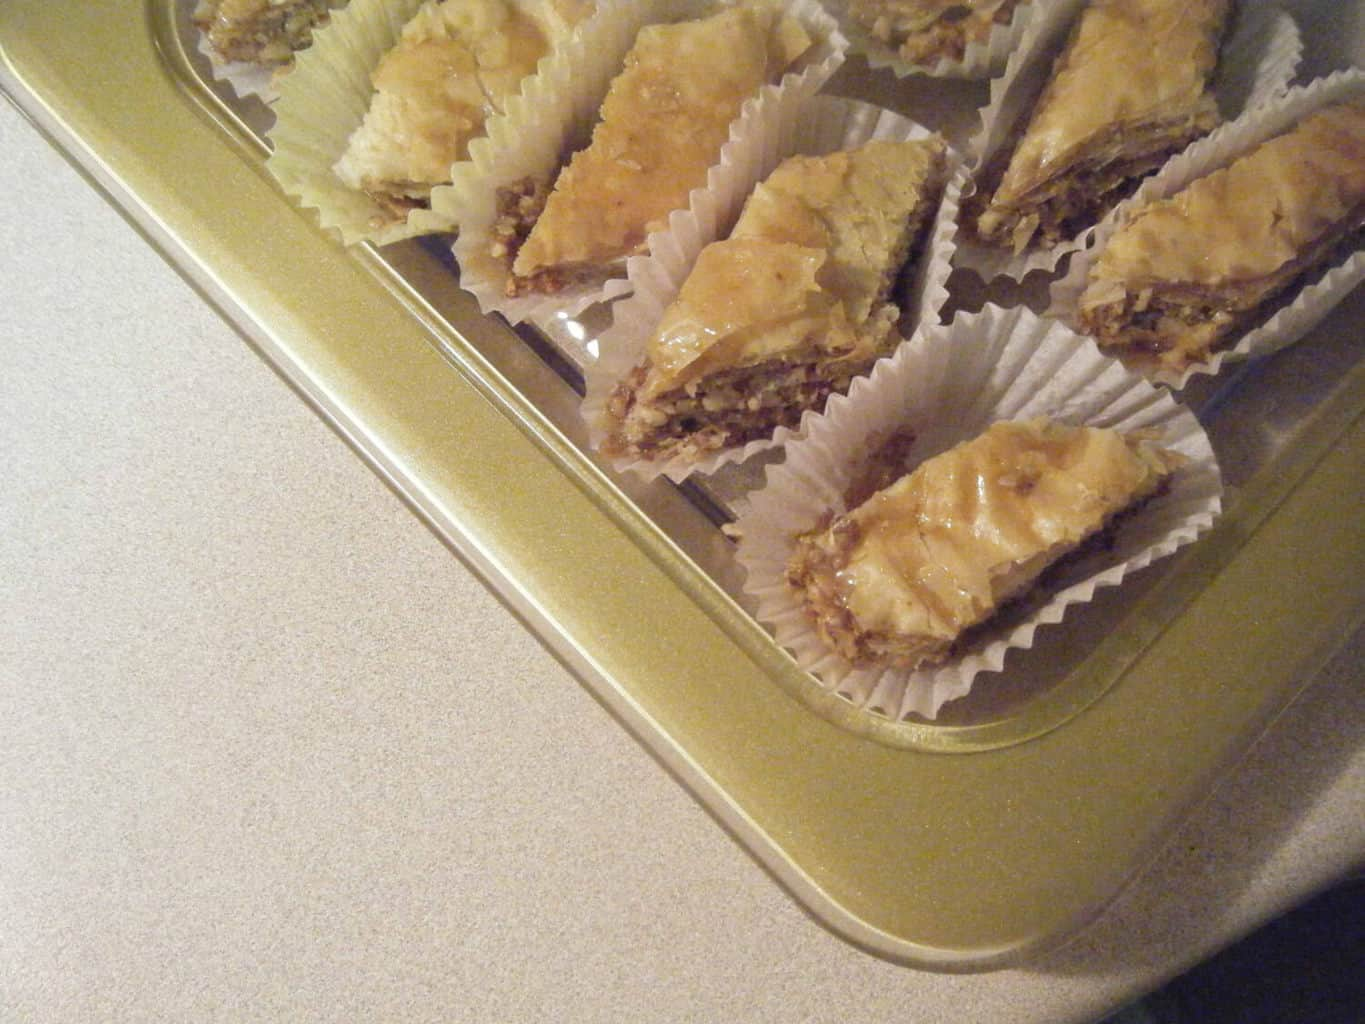 homemade Baklava ready to serve